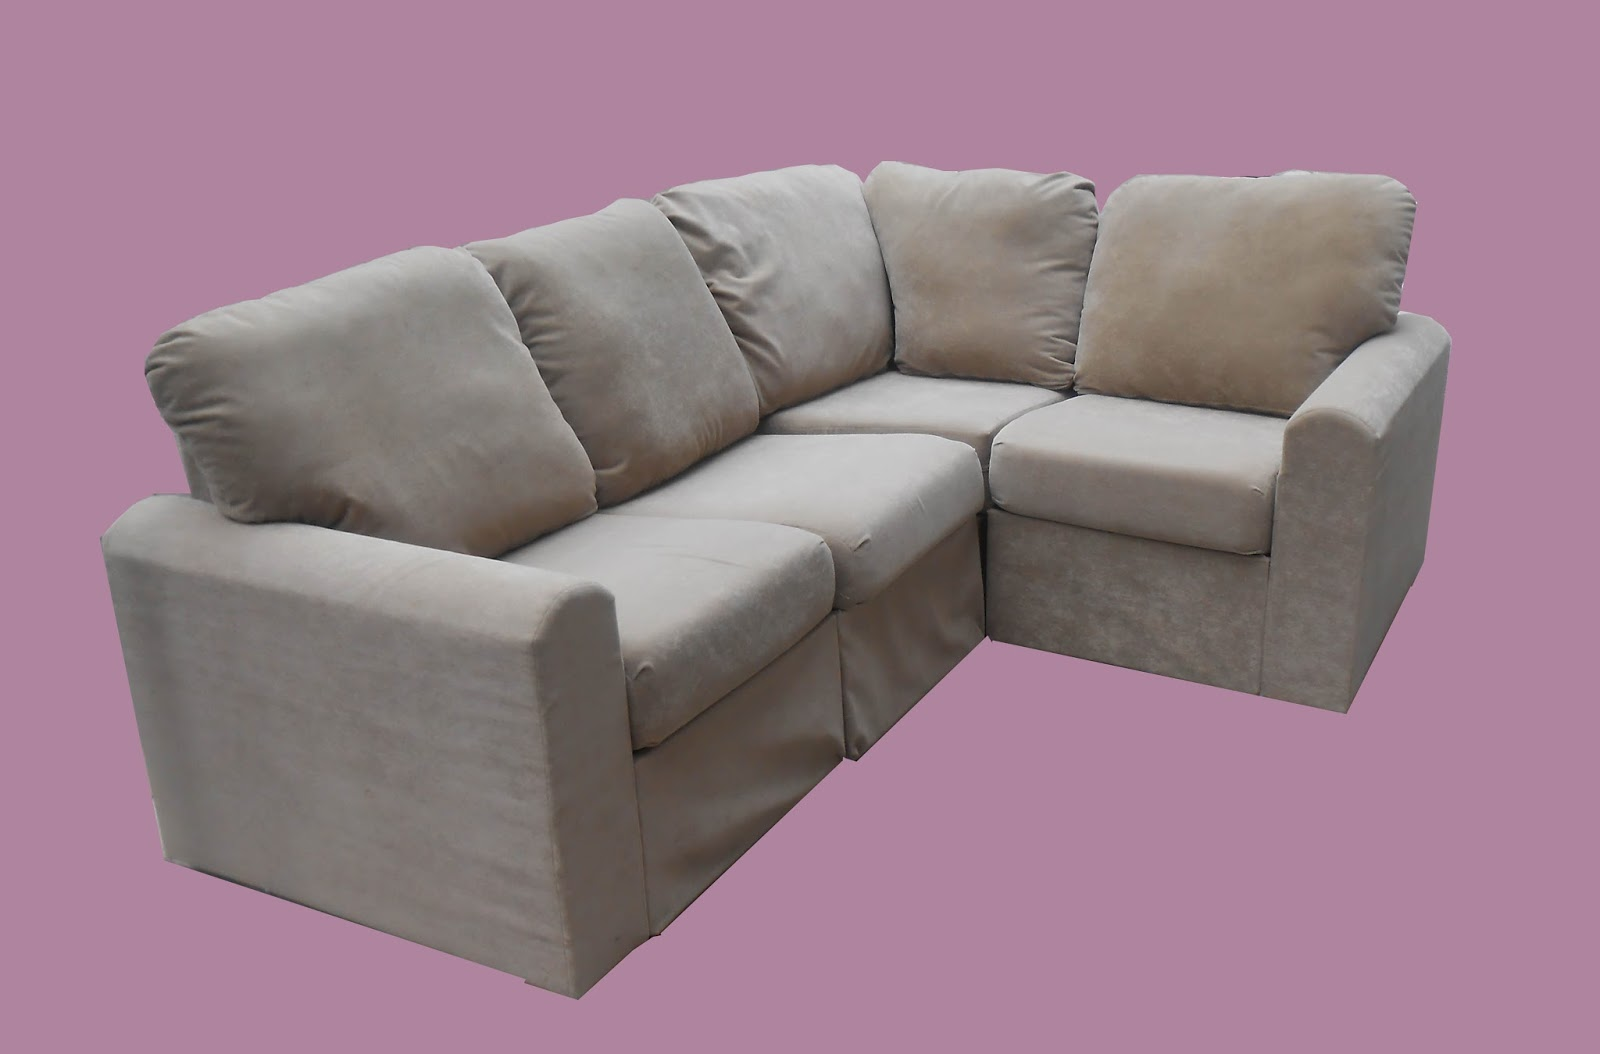 Uhuru furniture collectibles small modular sectional sold - Small space sectional couches paint ...